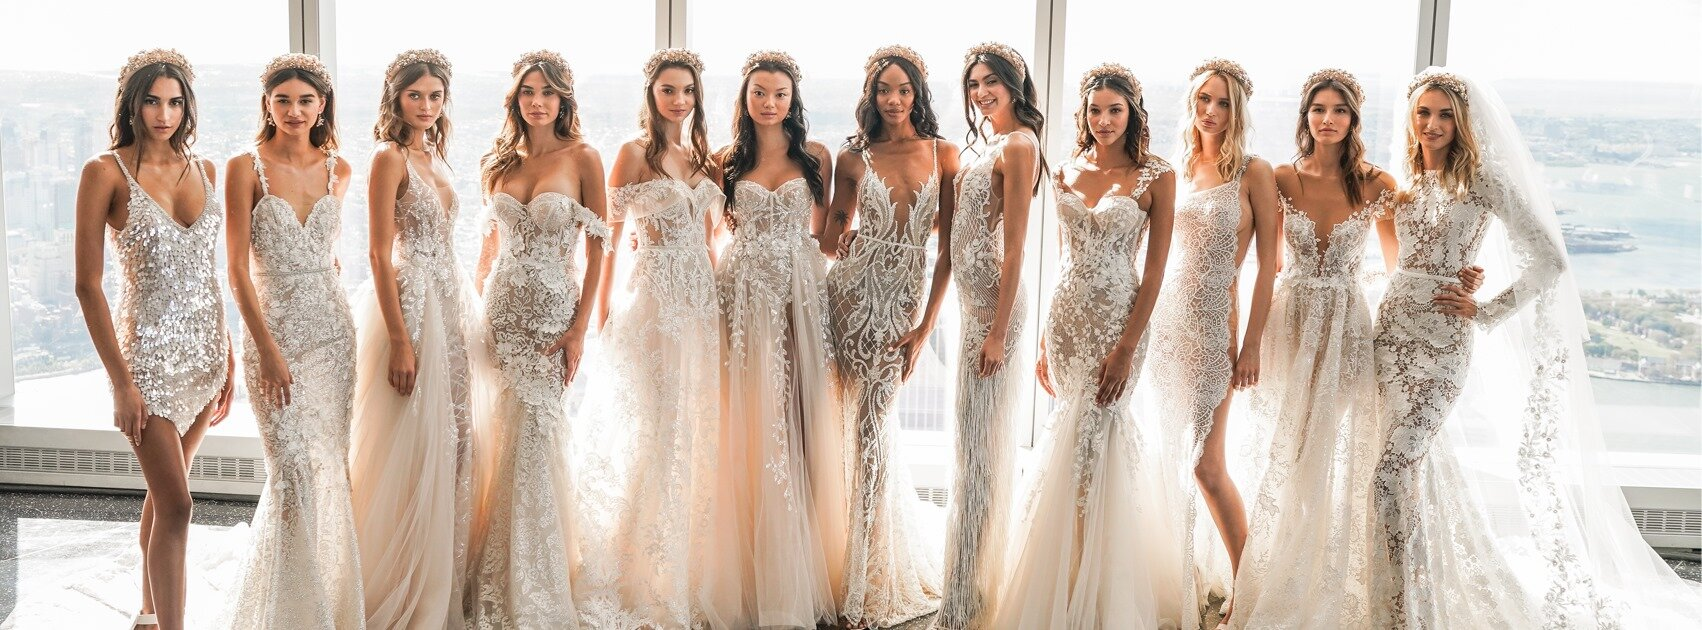 Berta Bridal Fall 2020 Collection